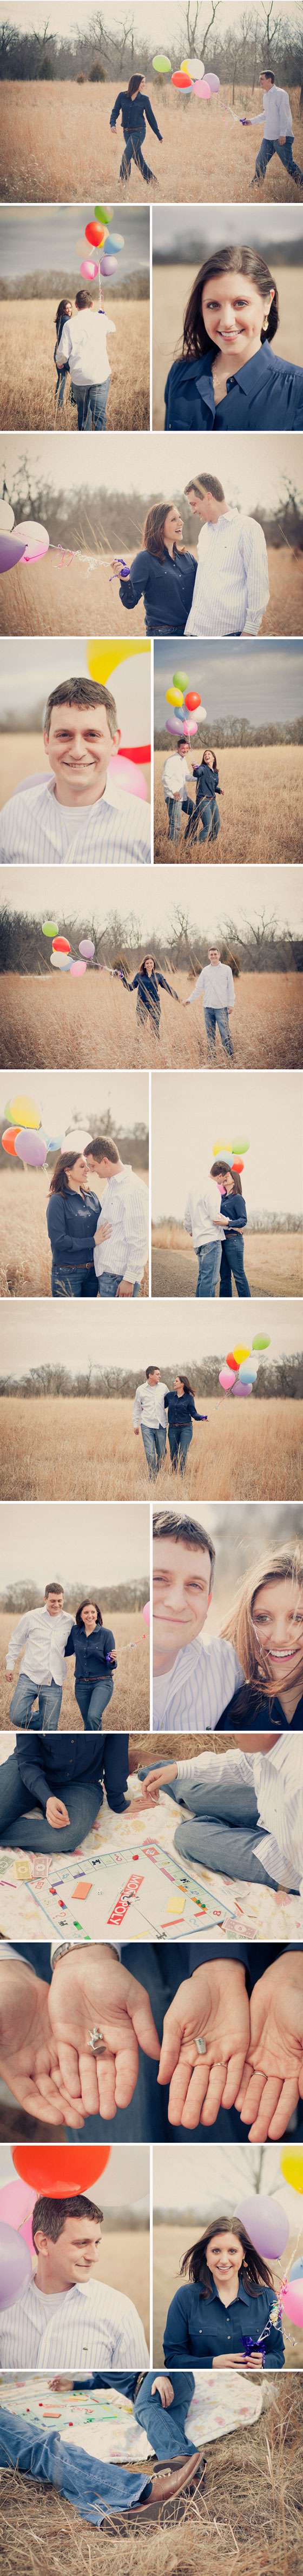 Balloons Engagement Session Vintage Engagement Session Sioux Falls, South Dakota Engagement Session